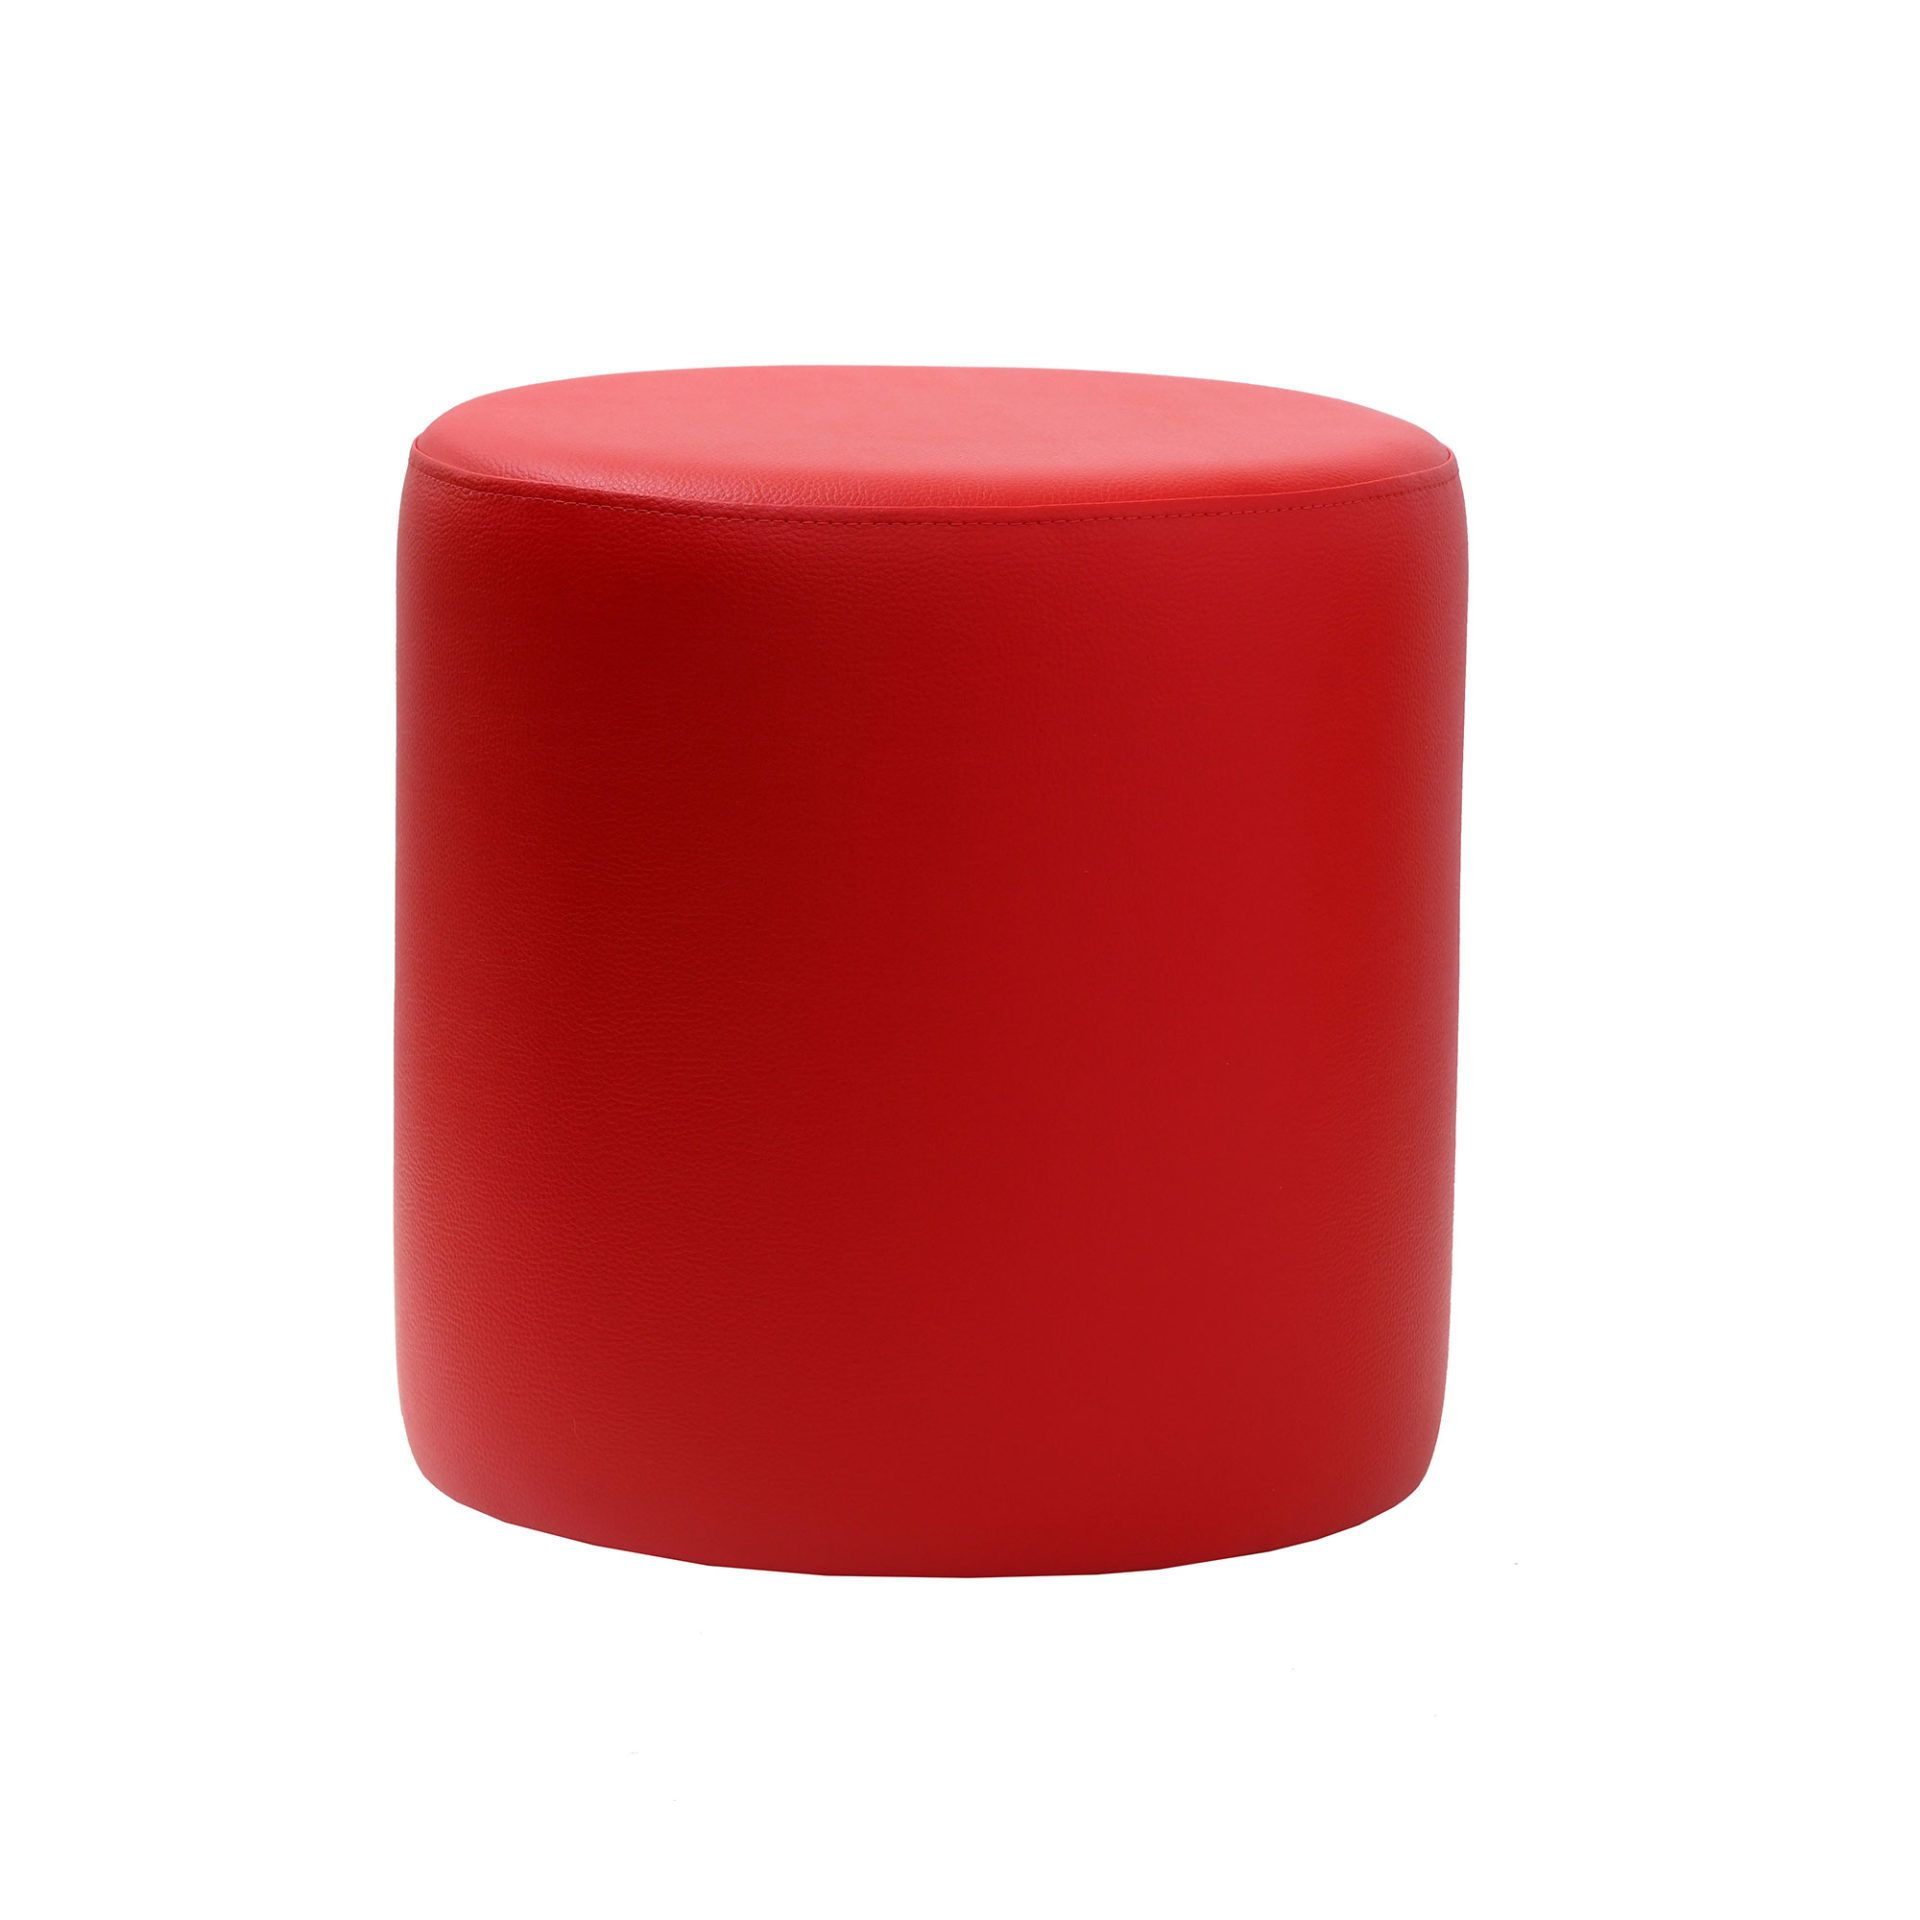 Ottoman Round - Red - Made In Europe